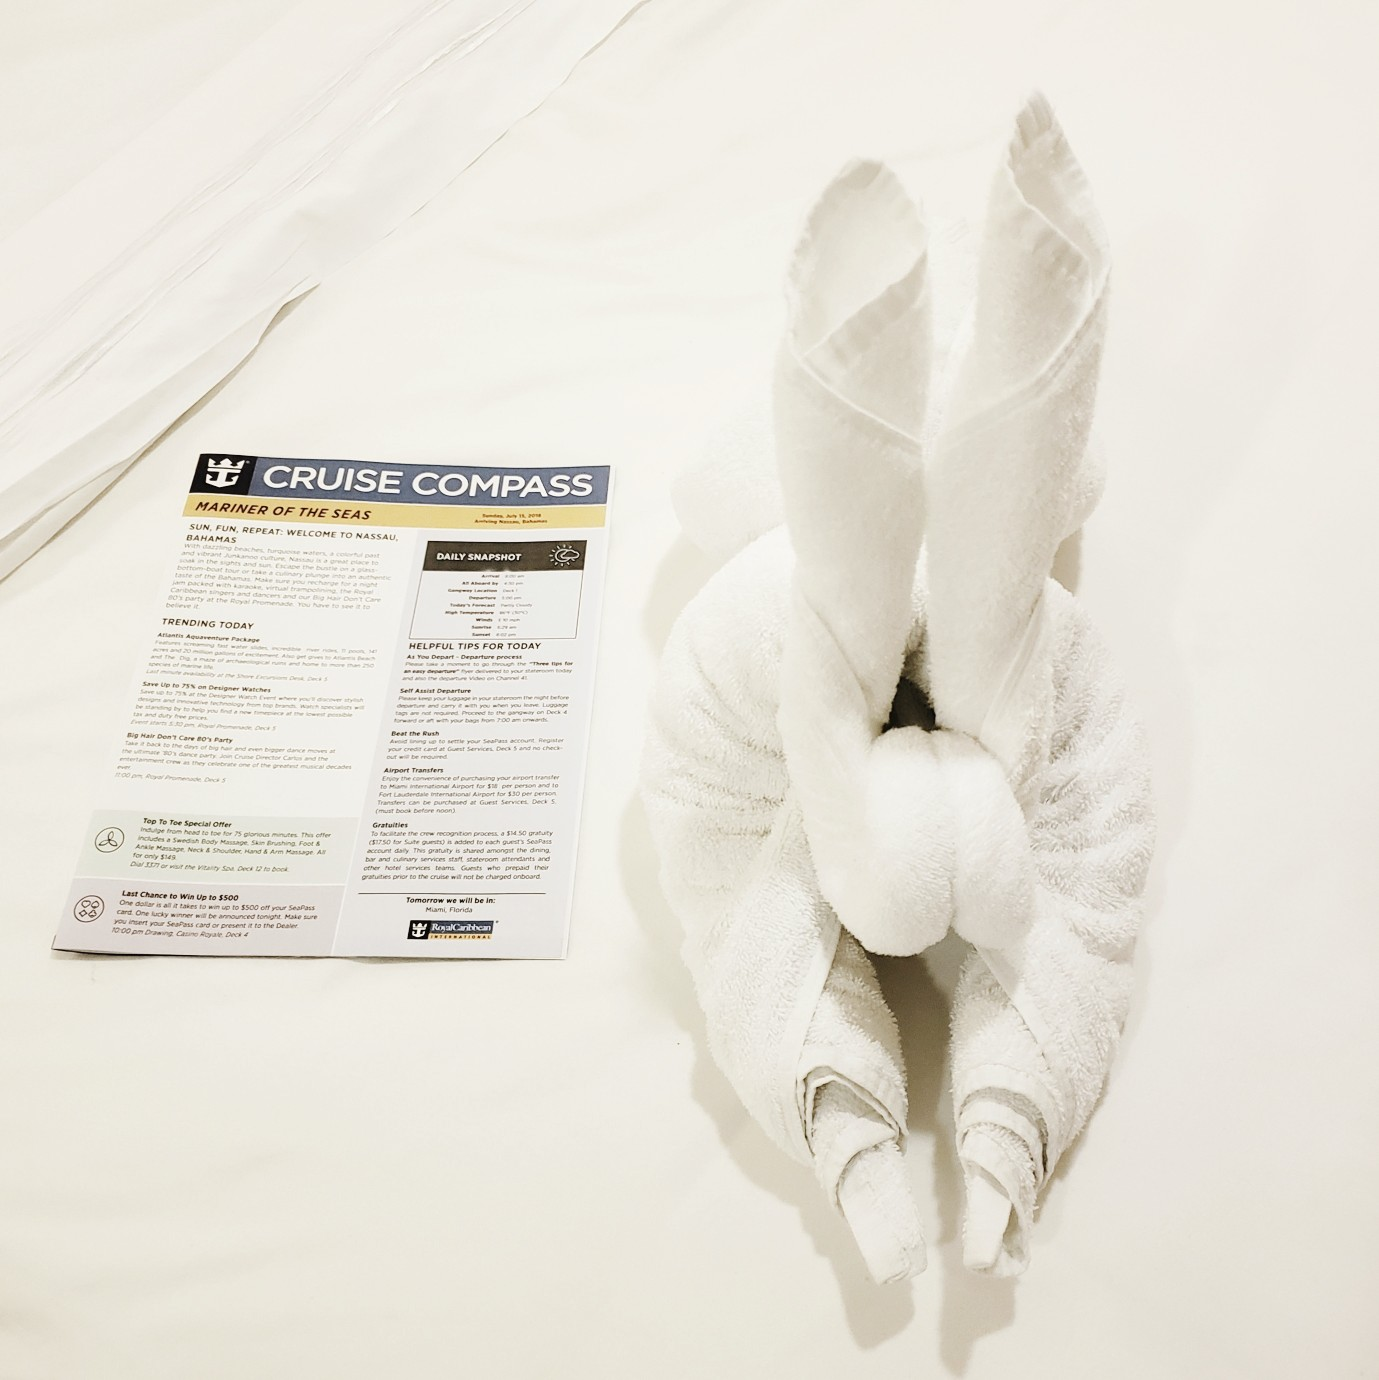 Towel Bunny Cruise Balcony Room Cruise Compass